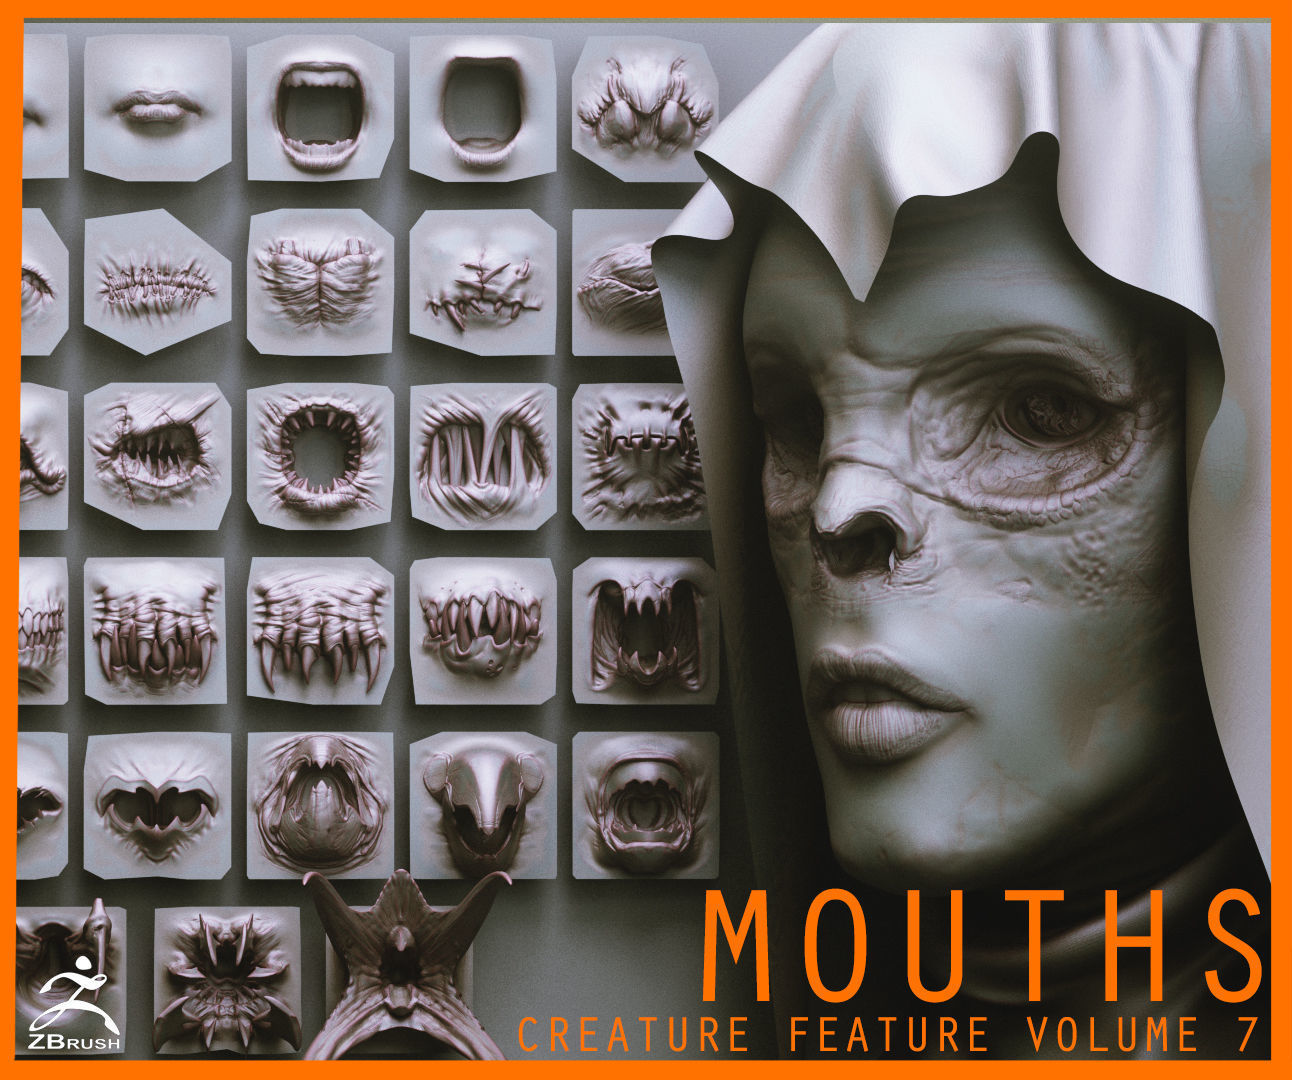 MOUTHS - 40 ZBrush VDMs and 5 bonus variations